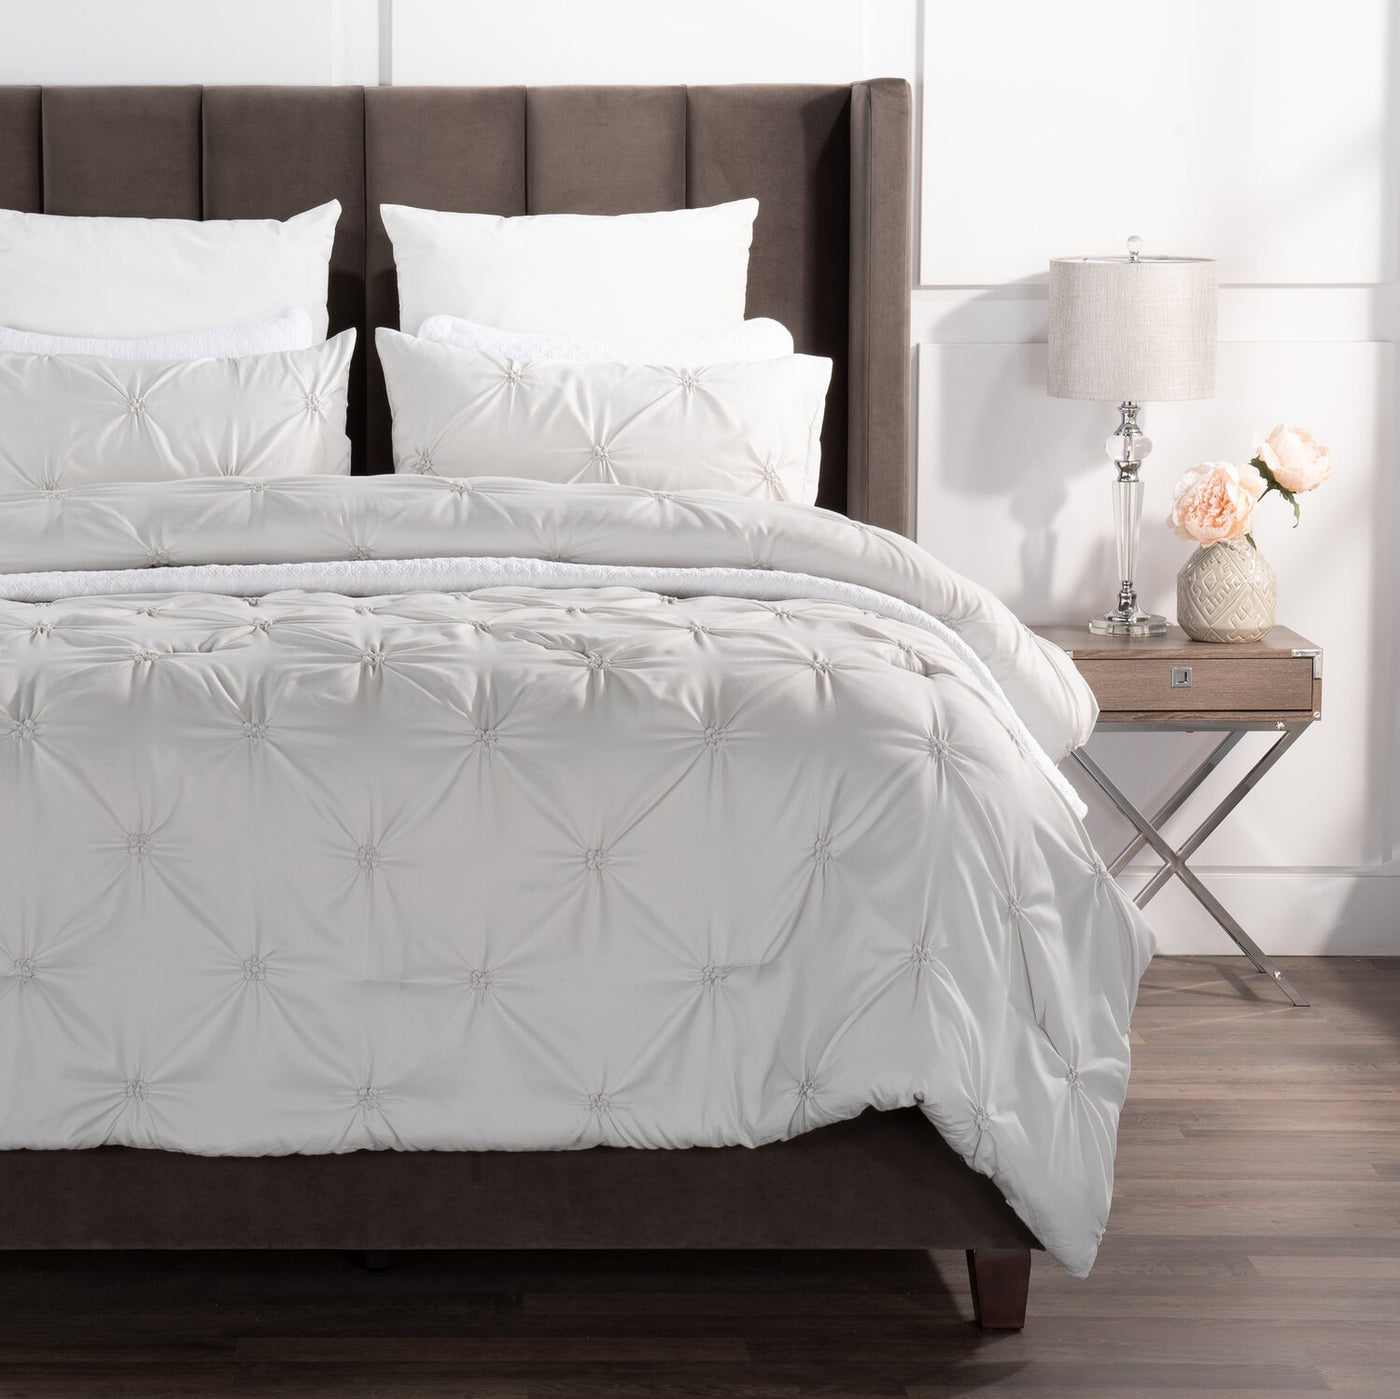 Brianna Light Grey 3 Piece Full Queen Comforter Set The Brick